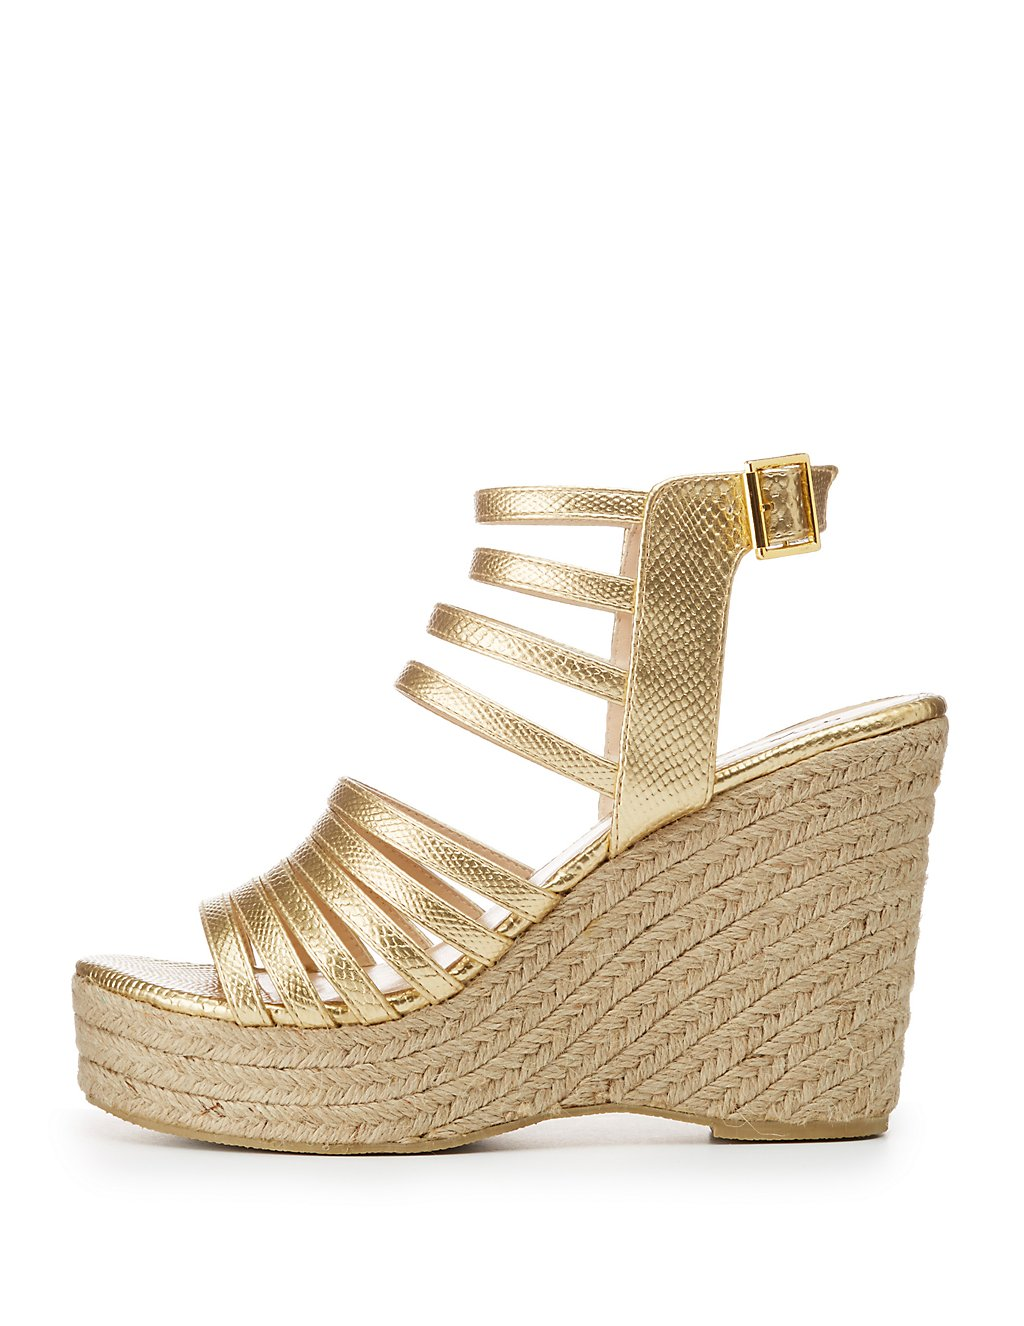 Fall Fashion trends 2017 gold sandals melonkiss